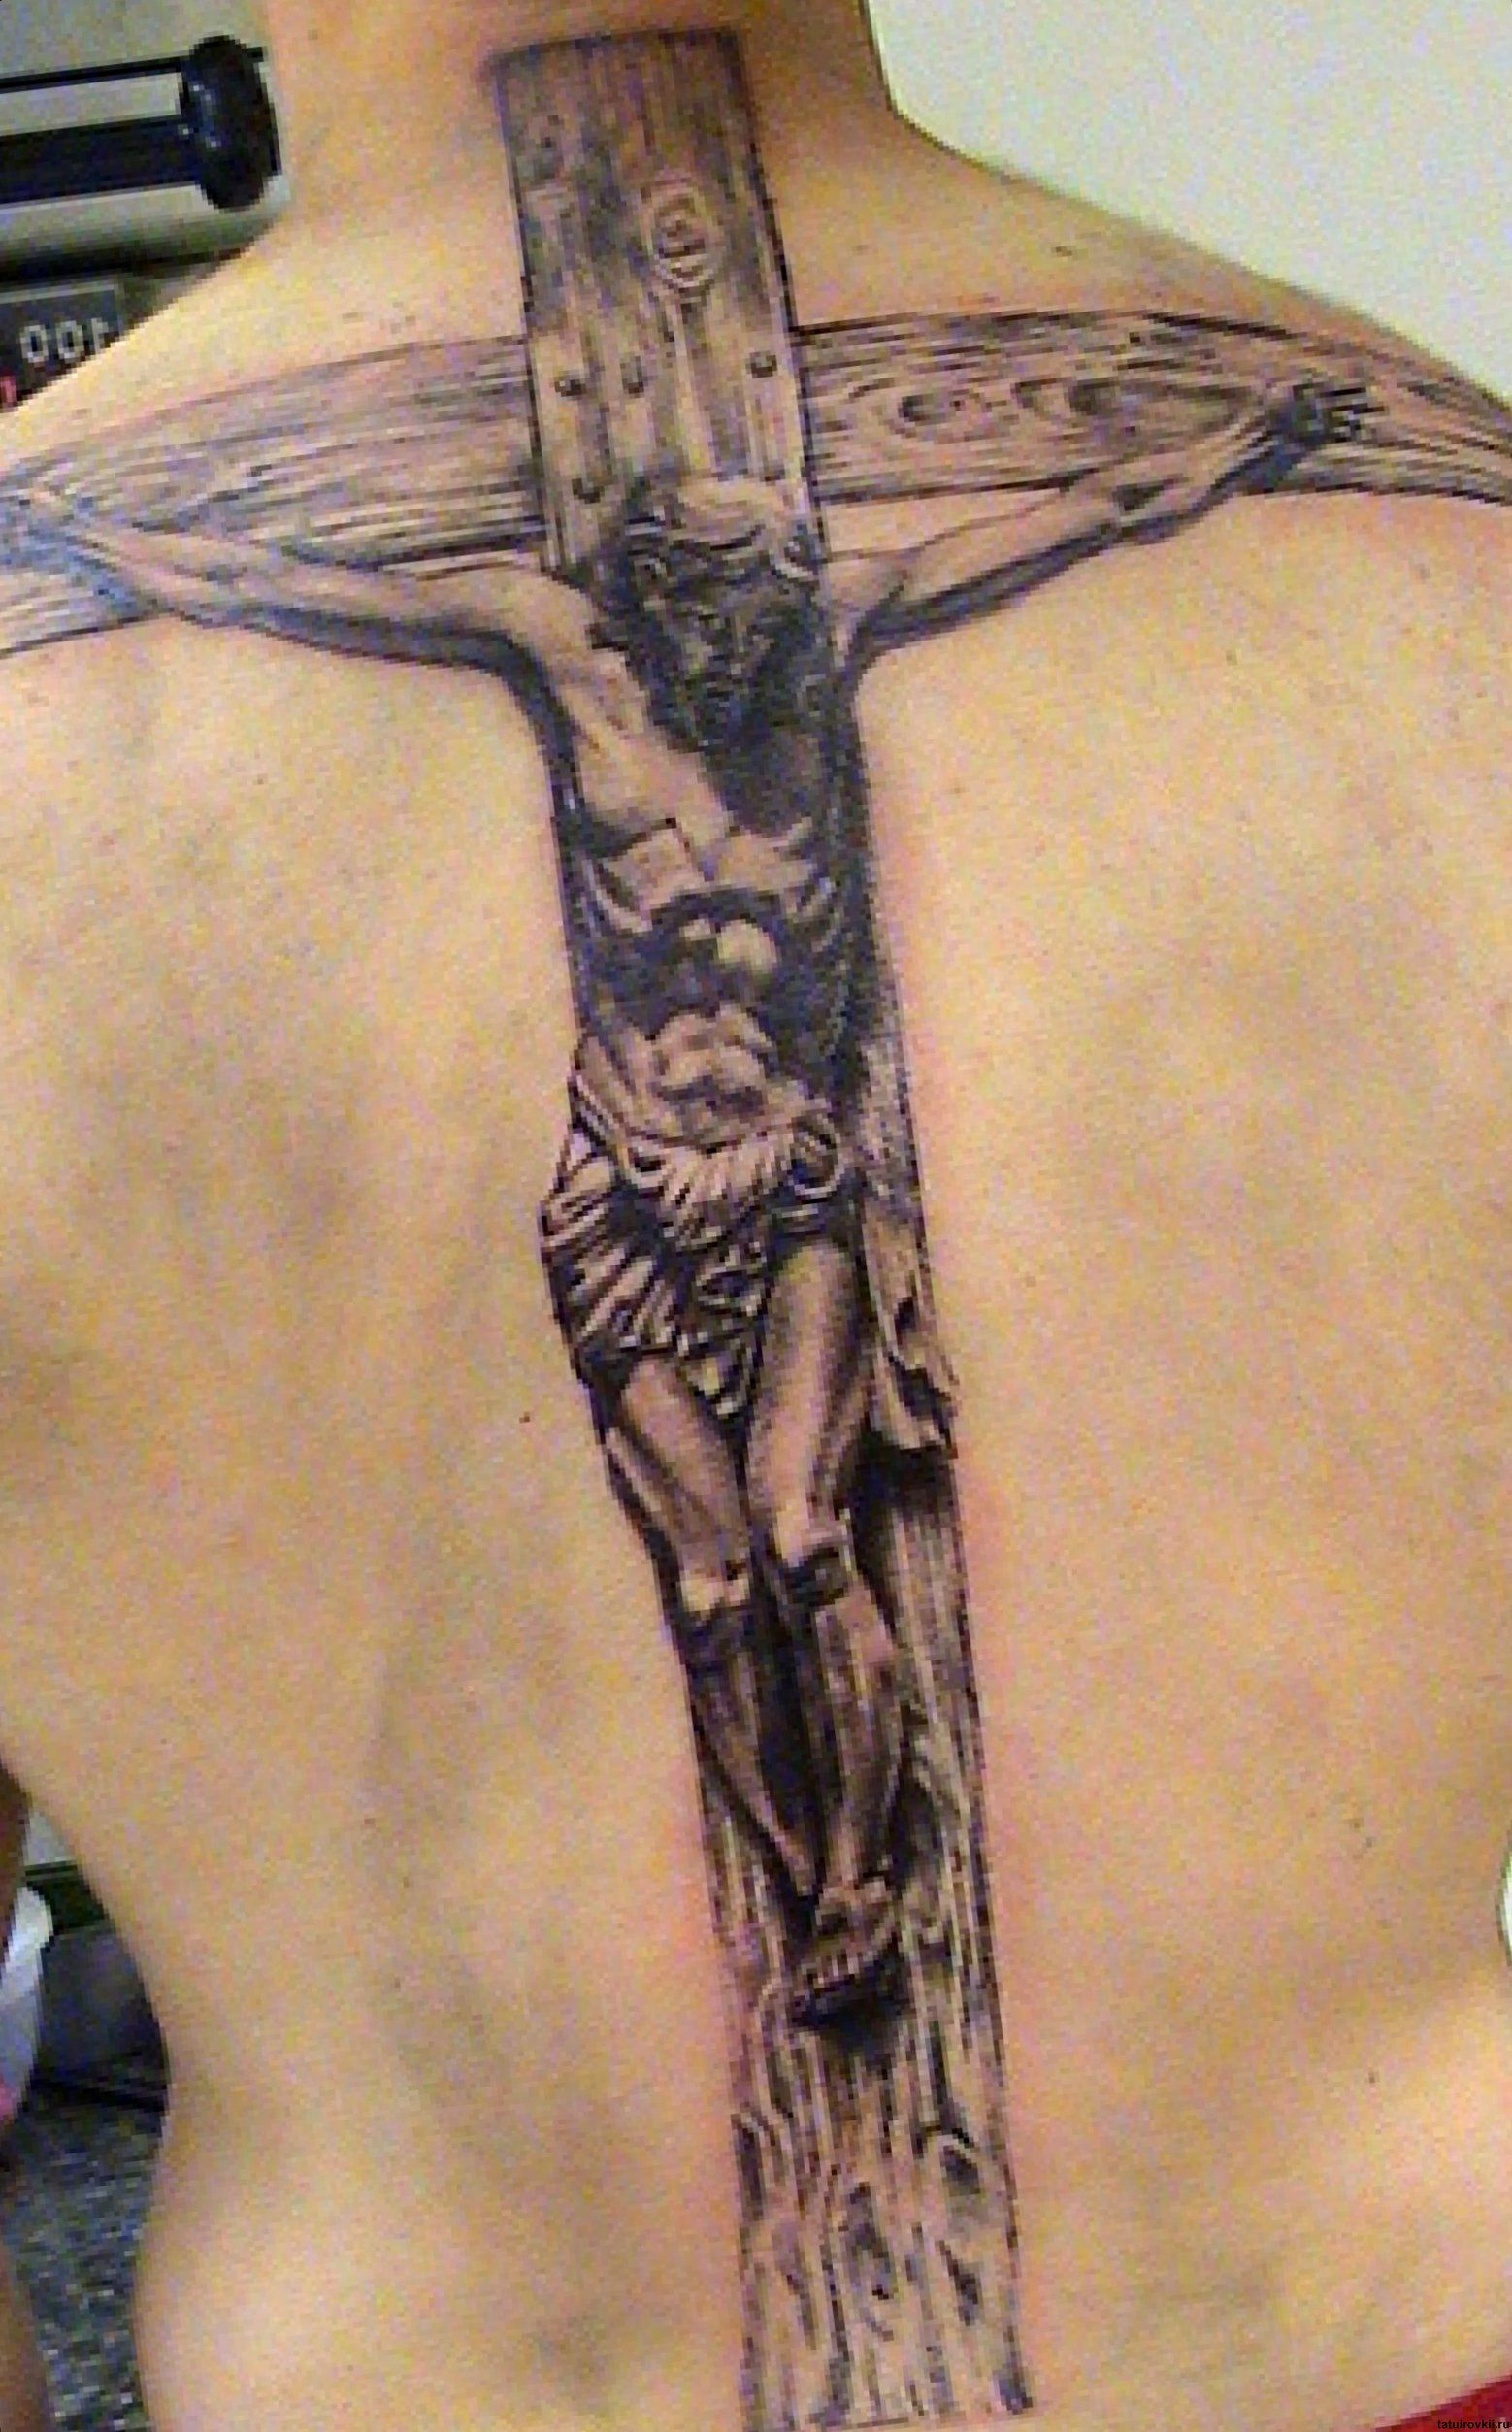 Cross on the jesus tattoo